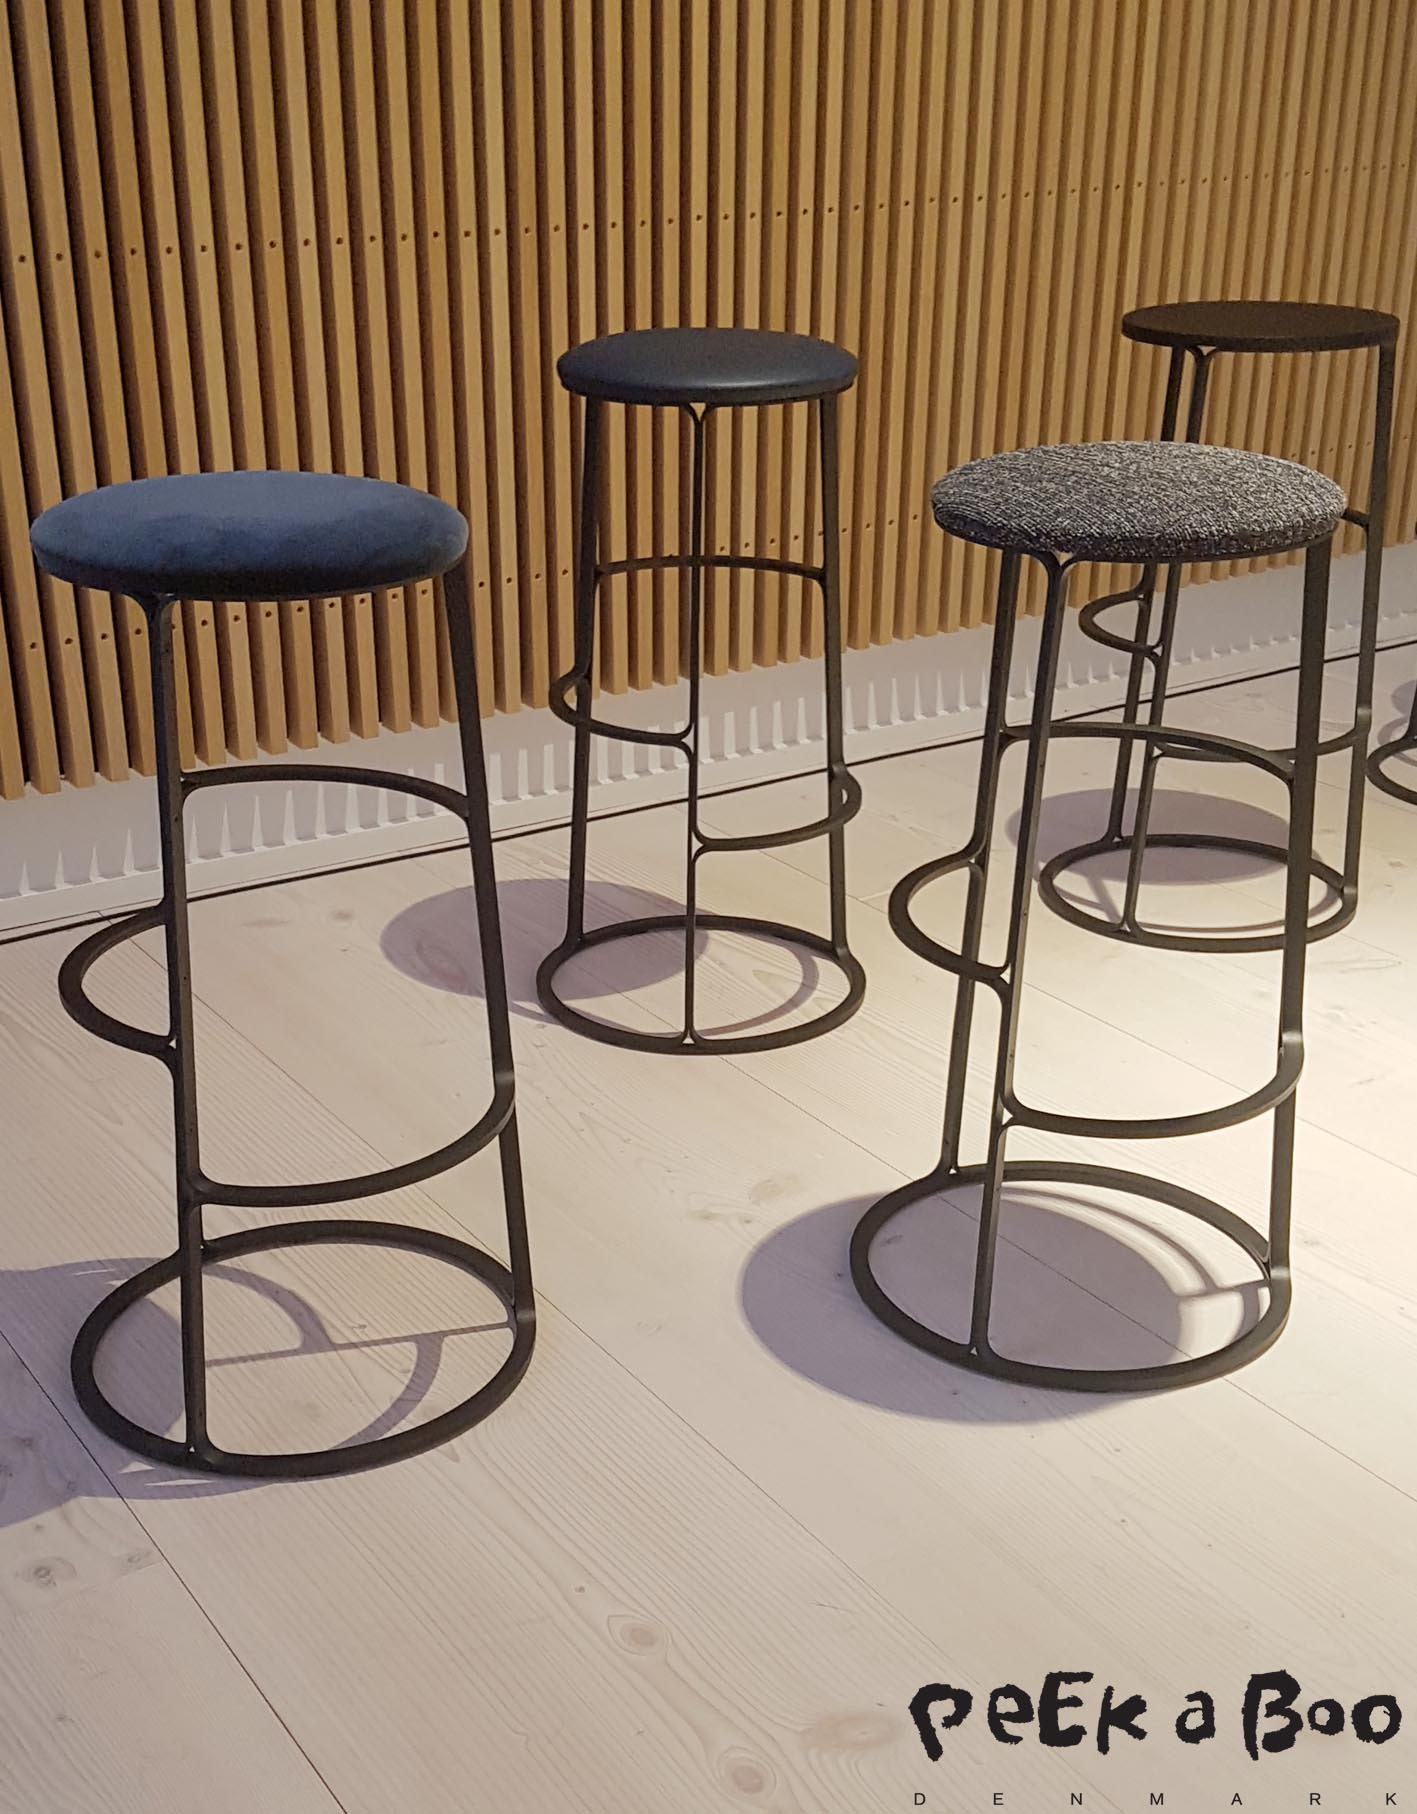 New barstool designed by Aurélien Barbry and to be launched later this year.